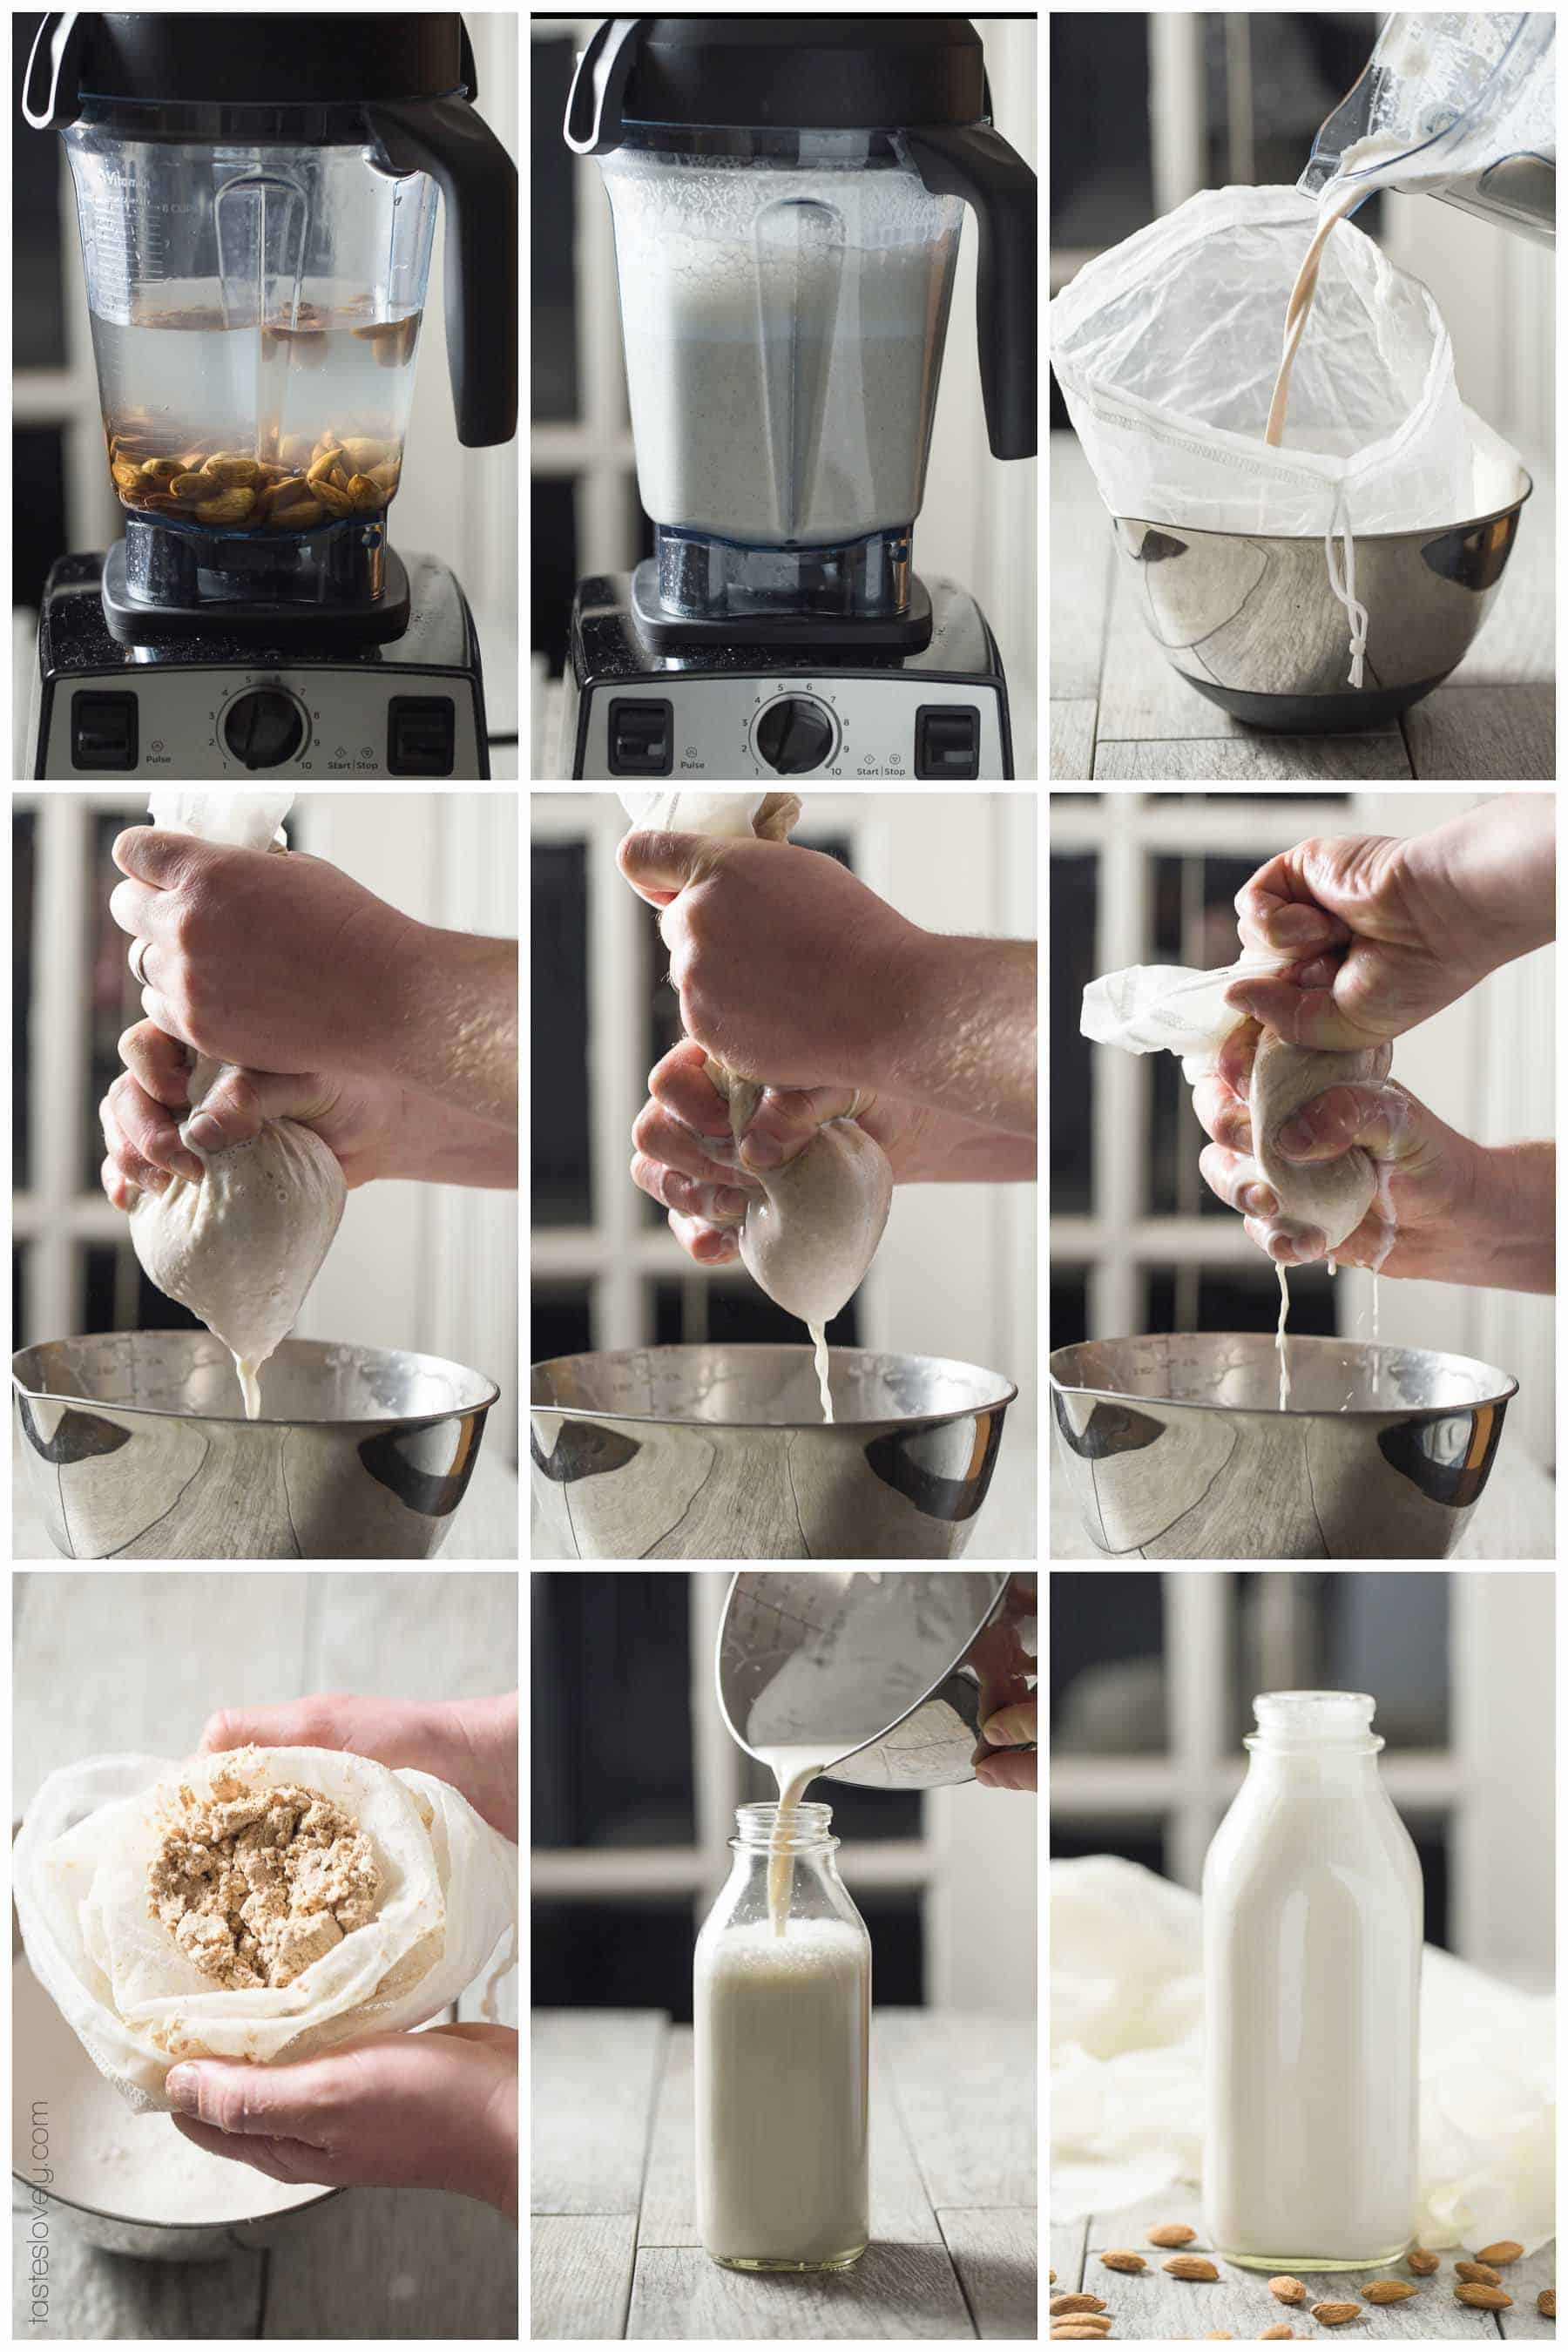 Paleo + Whole30 Homemade Almond Milk - just 2 ingredients! Paleo, Whole30, gluten free, grain free, dairy free